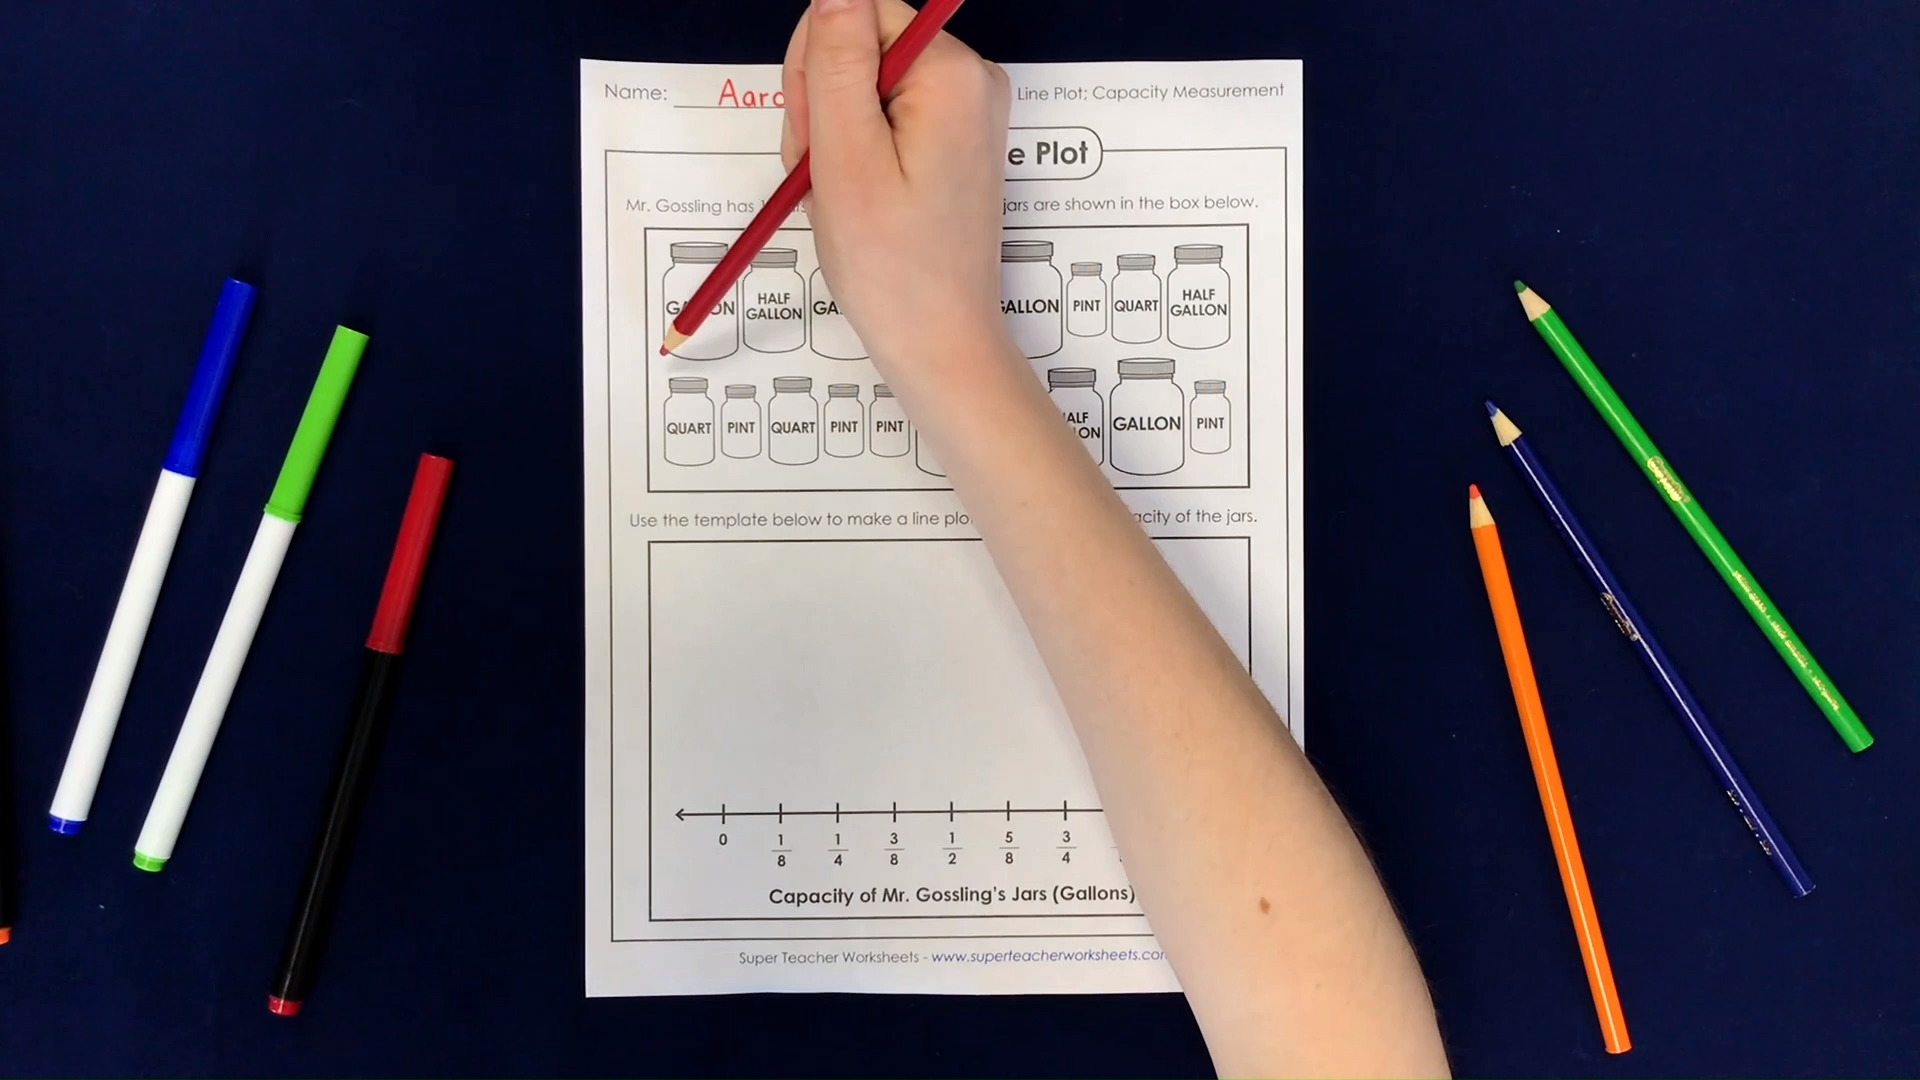 Learn All About Lineplots With Fun Printable Activities